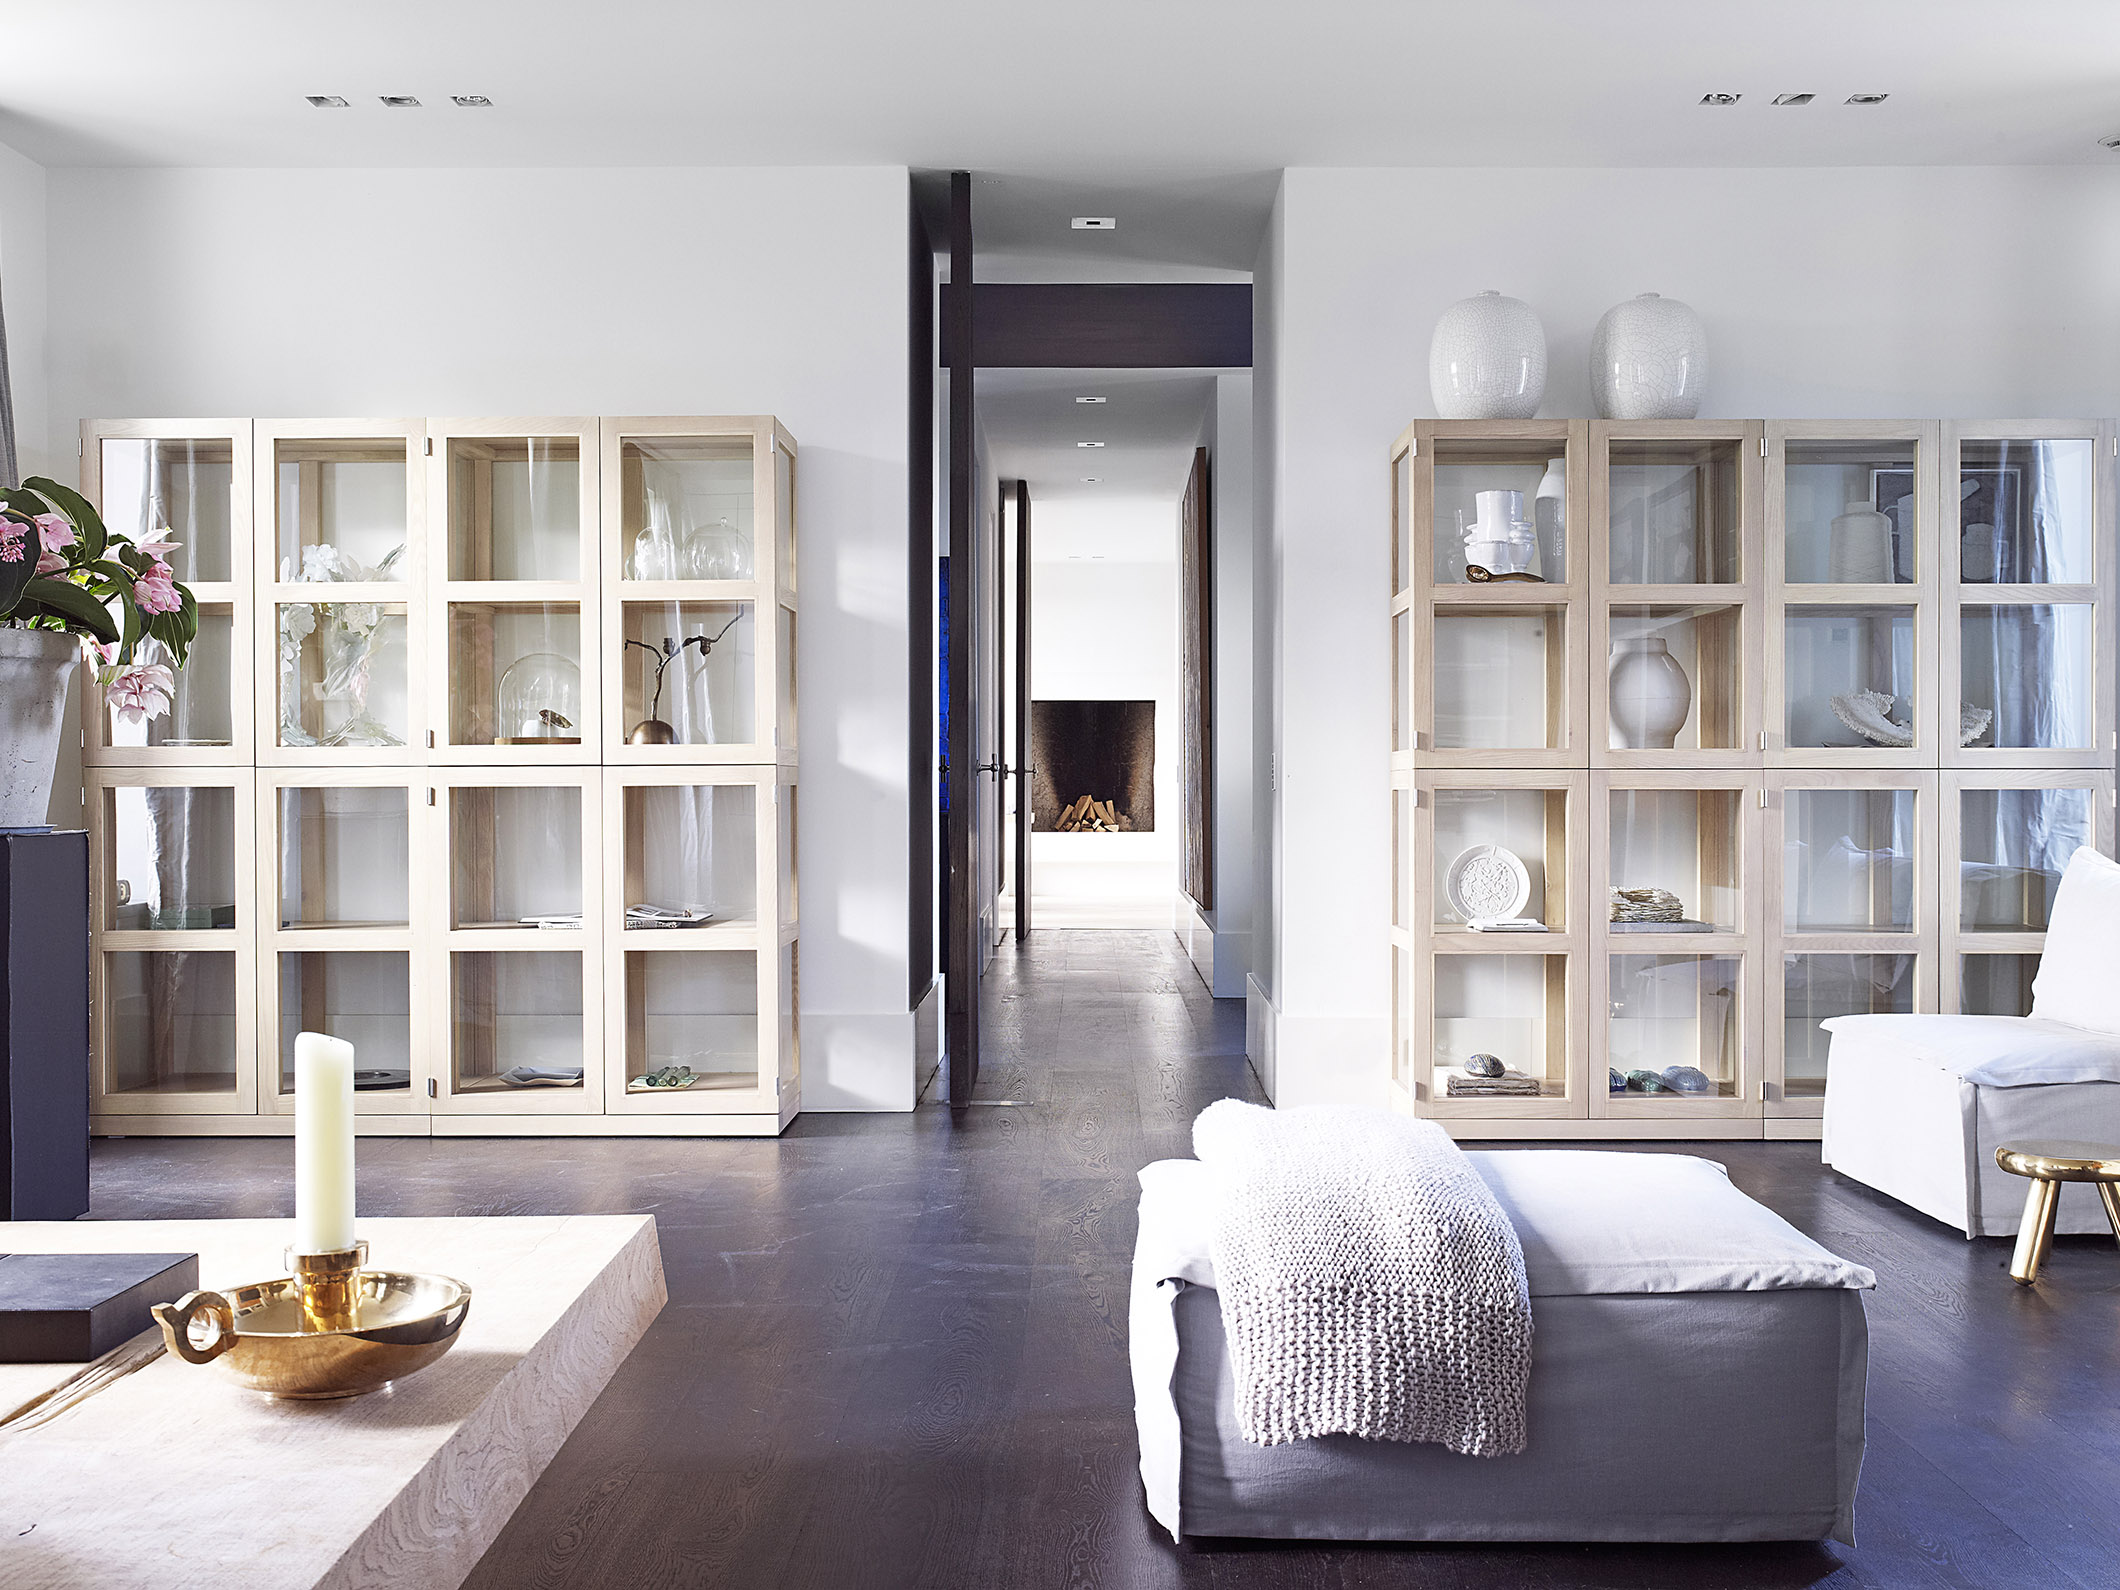 Villa - Private Residences - Design Projects